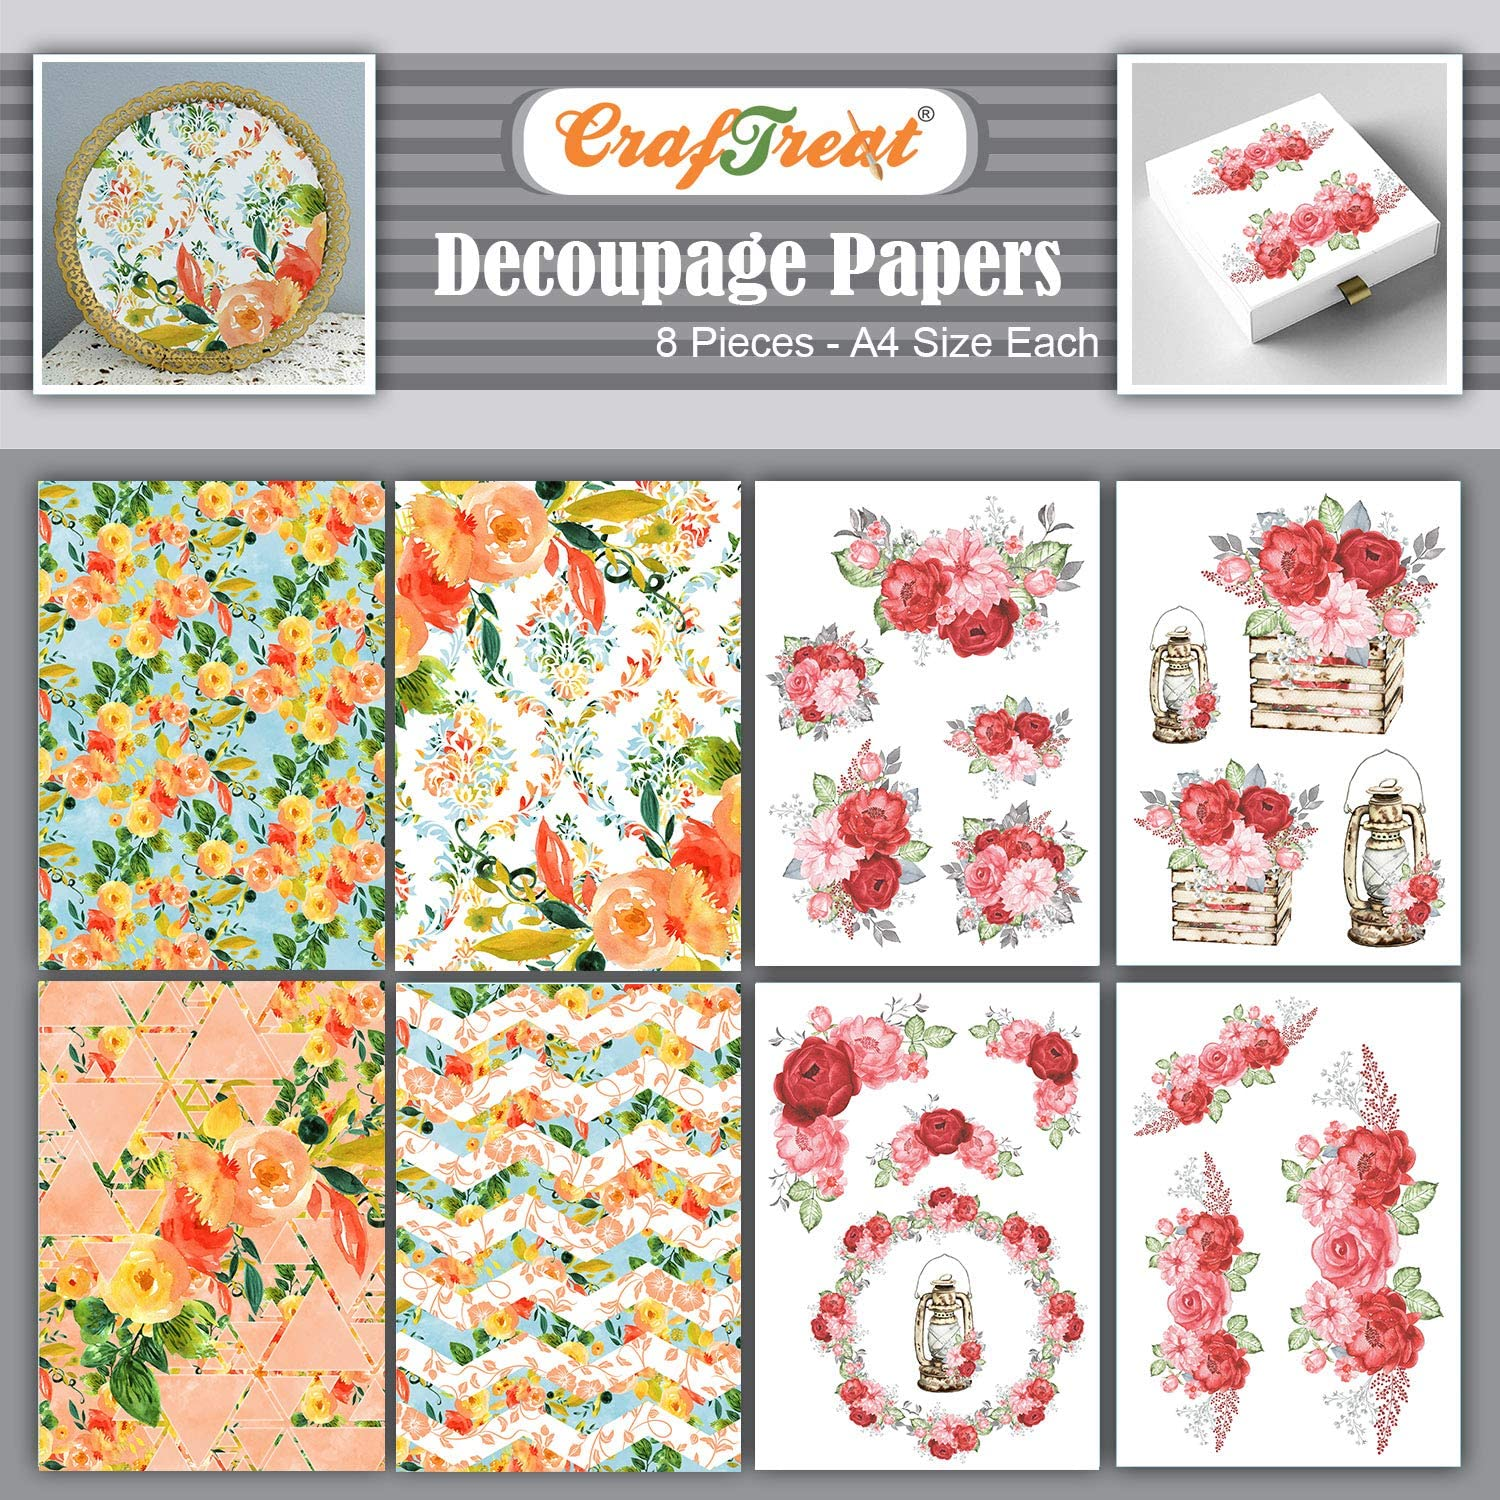 CrafTreat Decoupage Paper - Summer Flowers and Red Roses